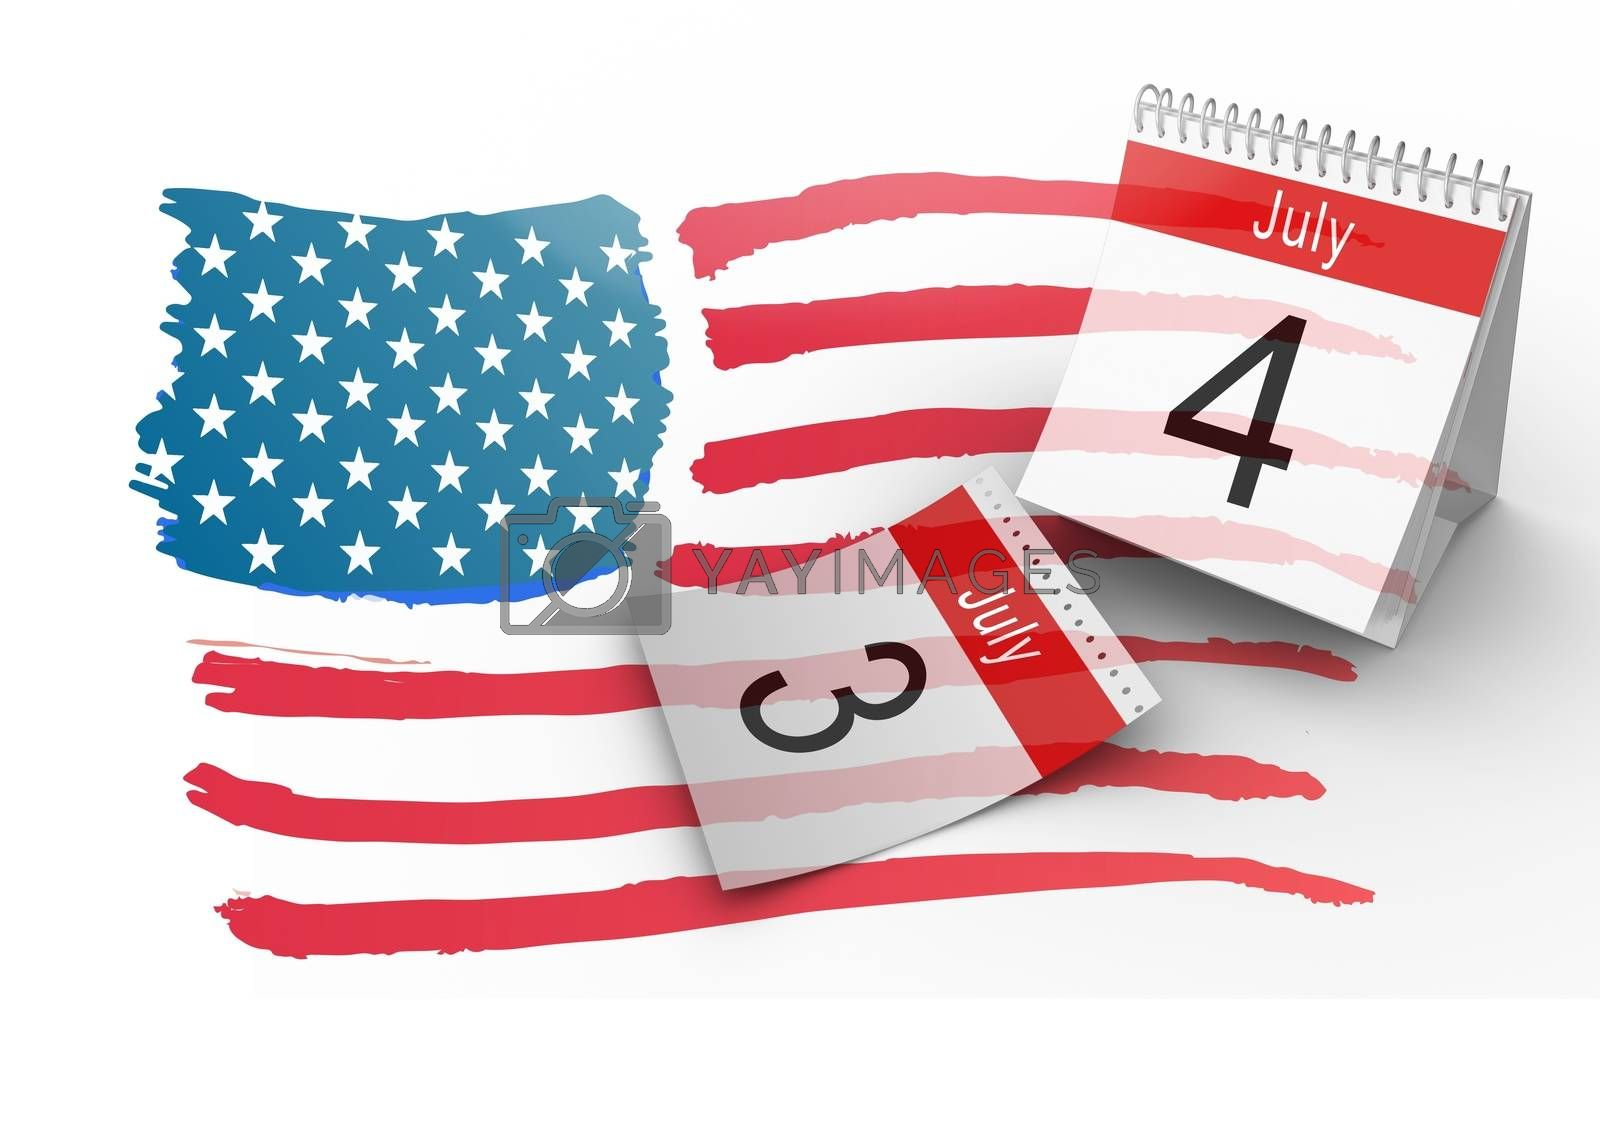 Digital composite of 4th of July Calendar with drawn american flag